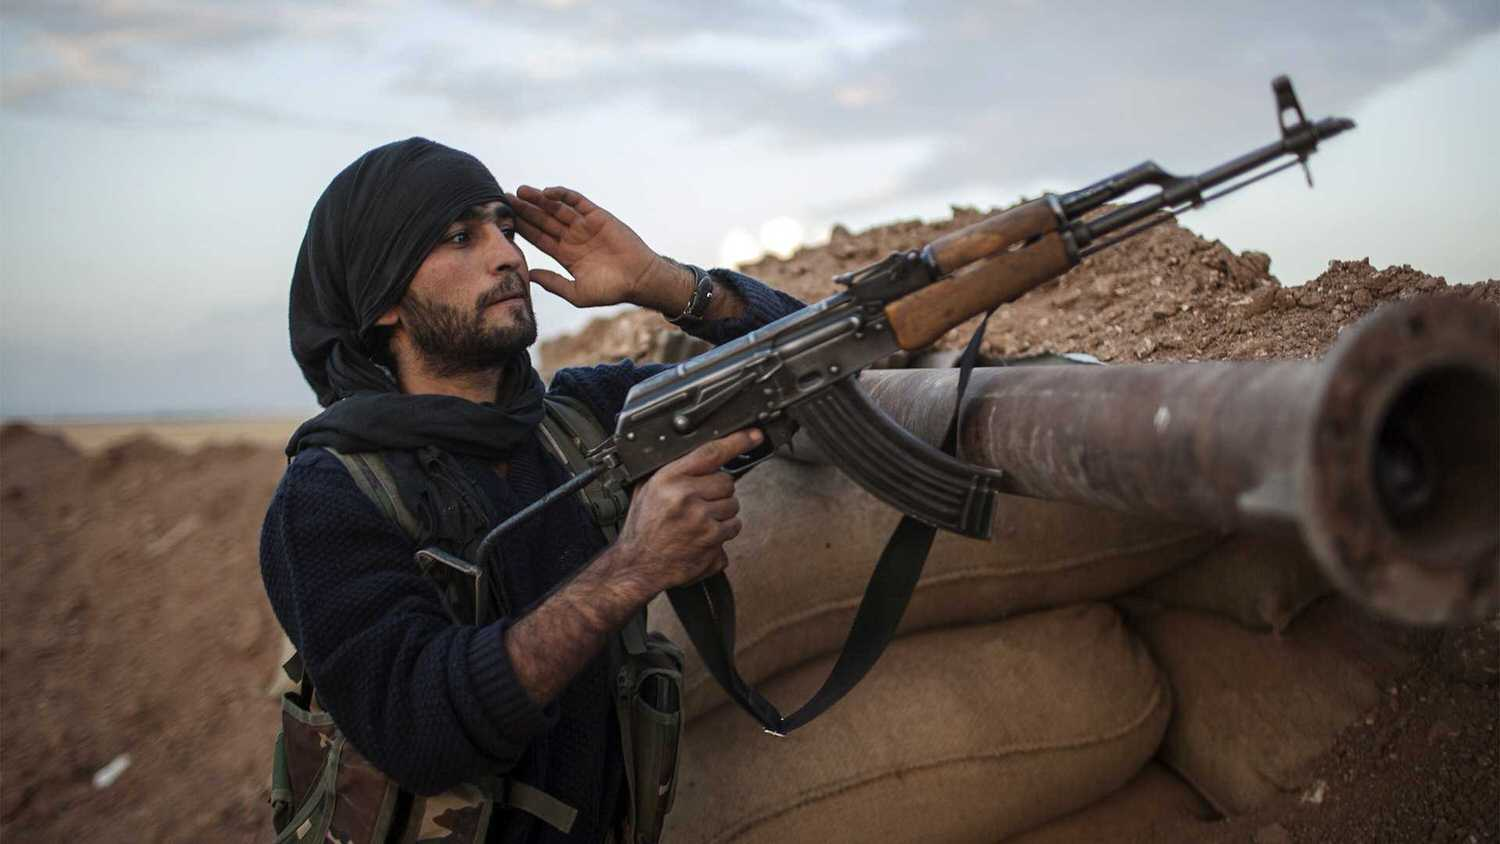 An ISIS fighter in northern Syria.